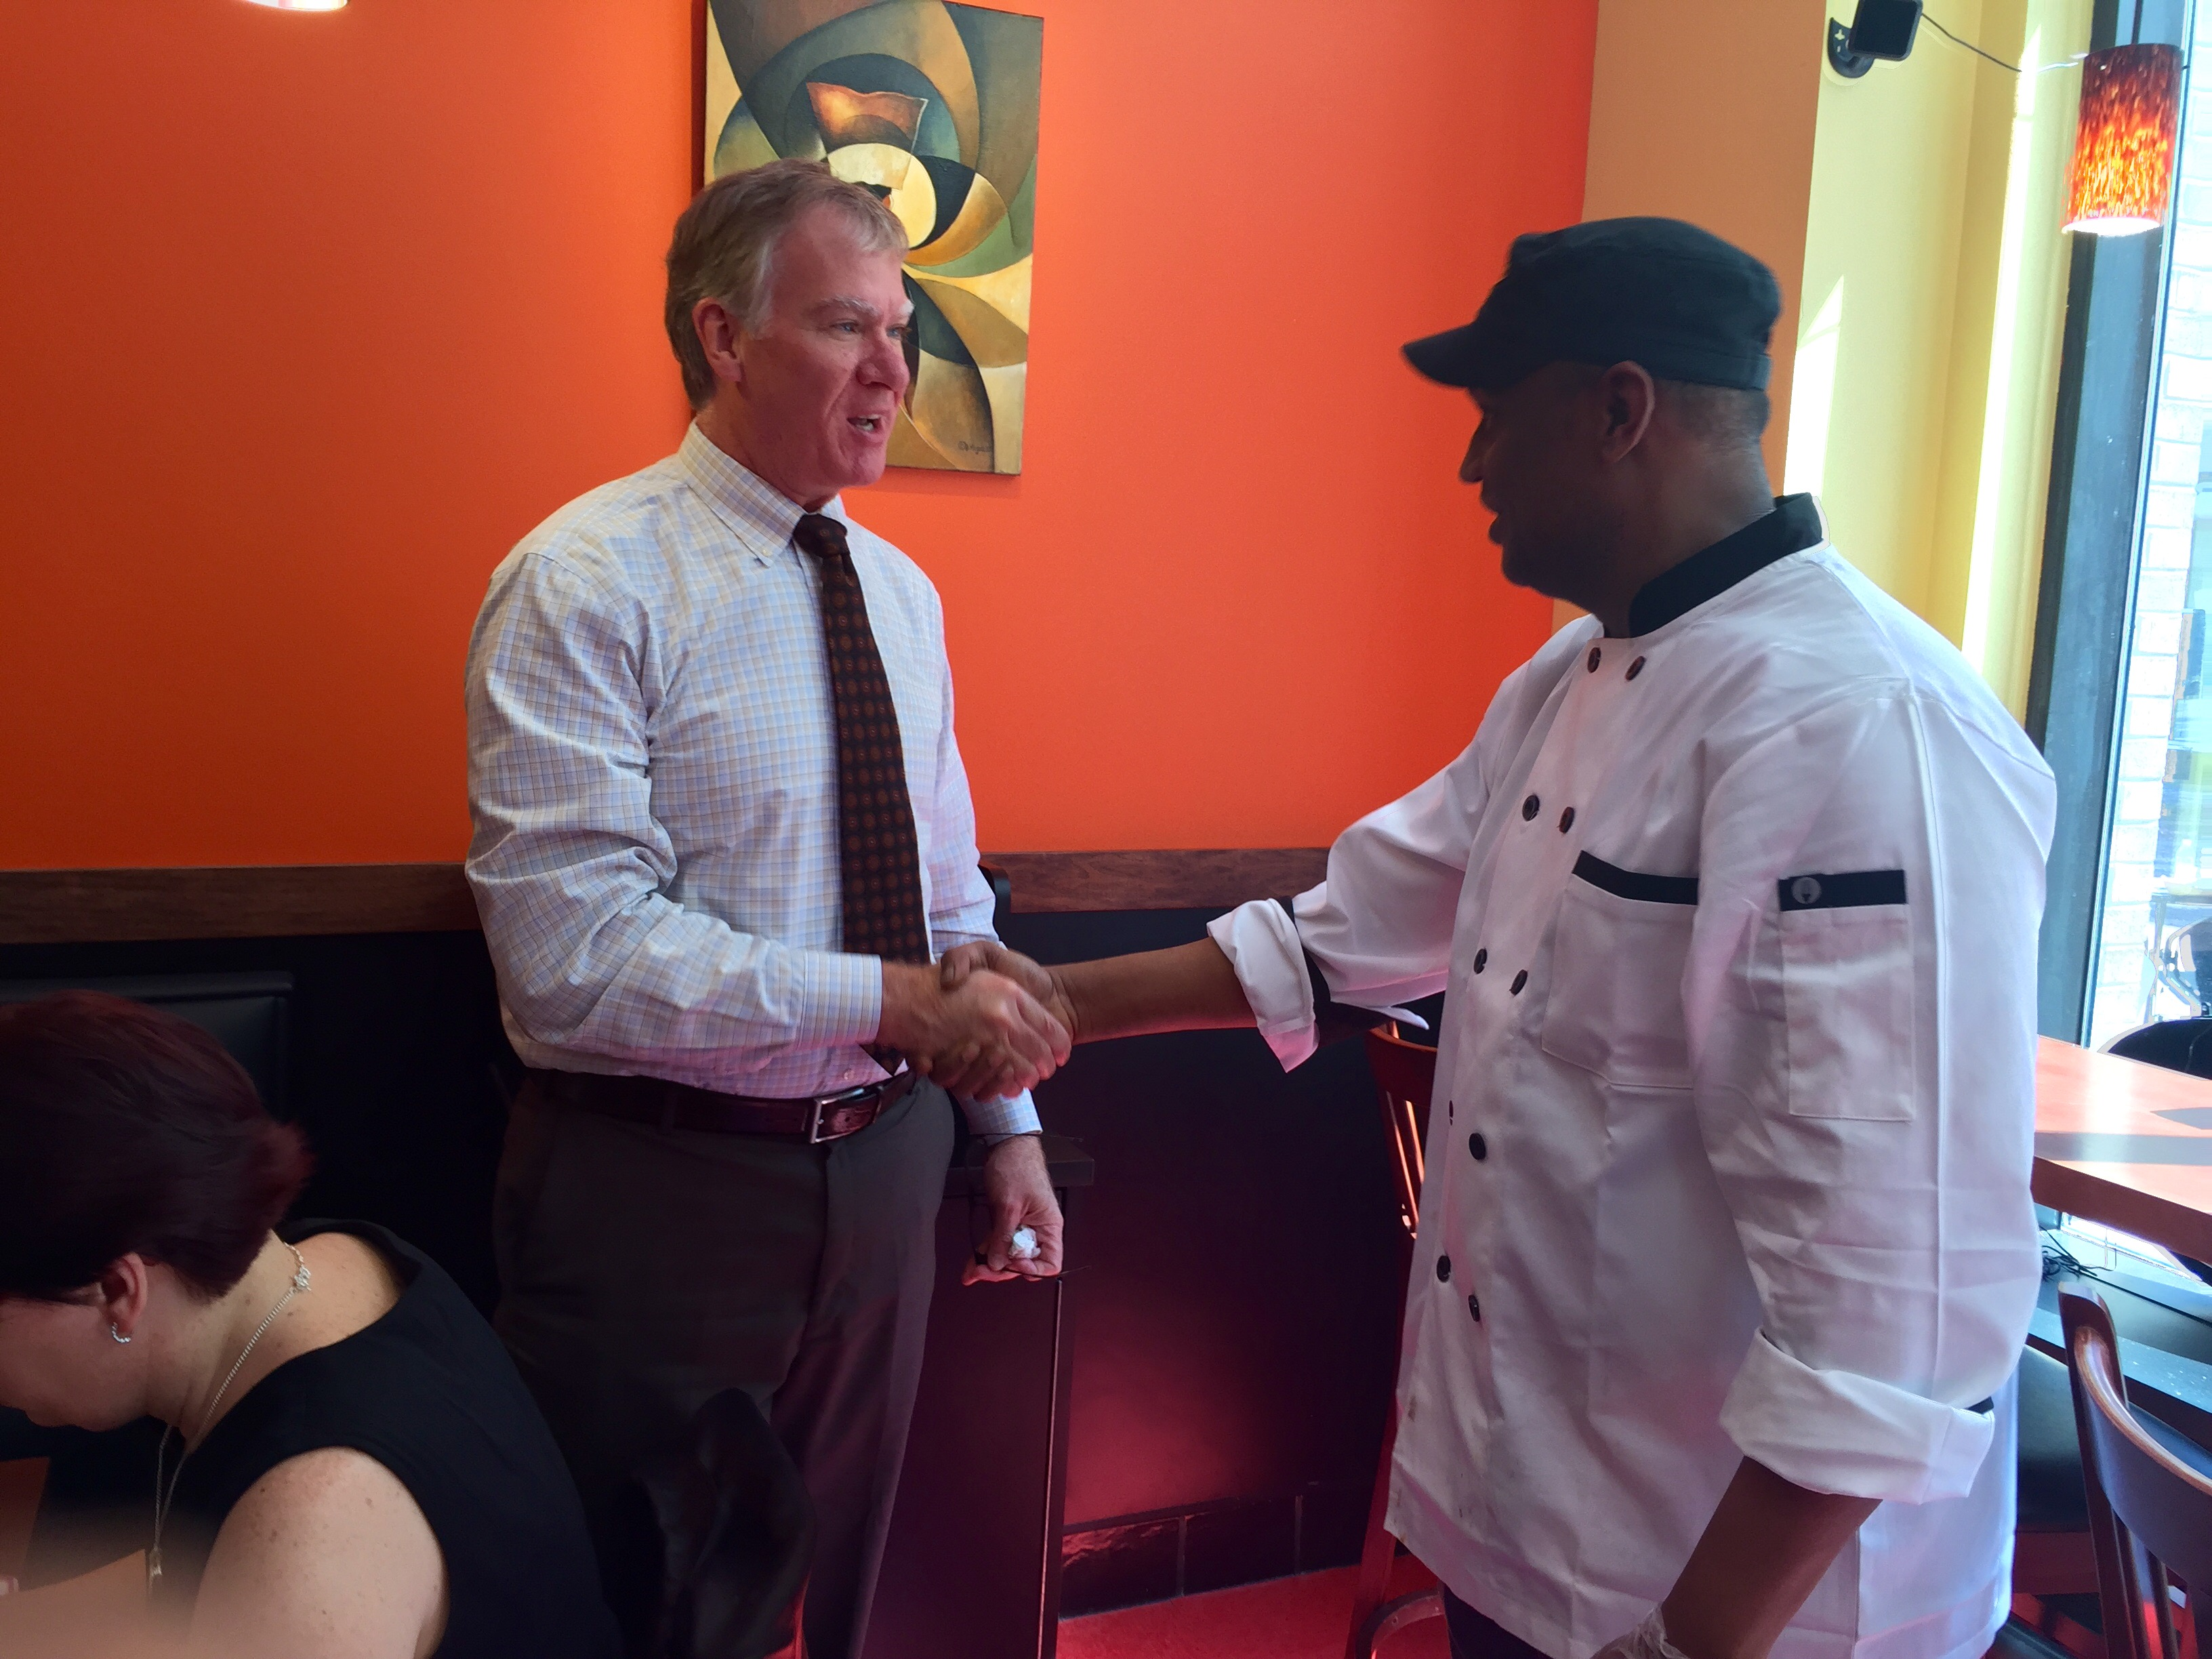 Afro Deli: Visit From Our New Mayor